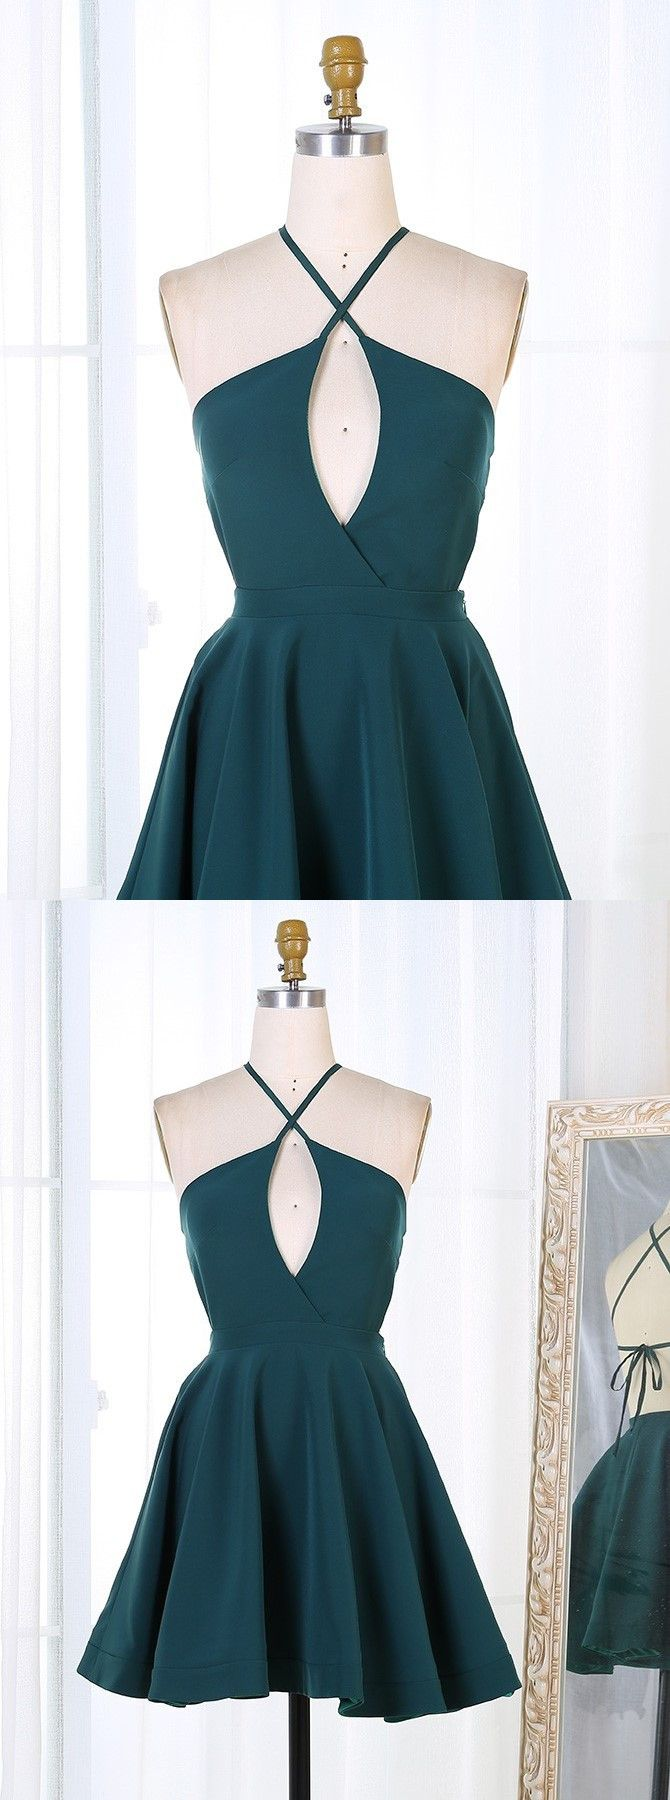 Aline spaghetti straps keyhole dark green satin homecoming dress